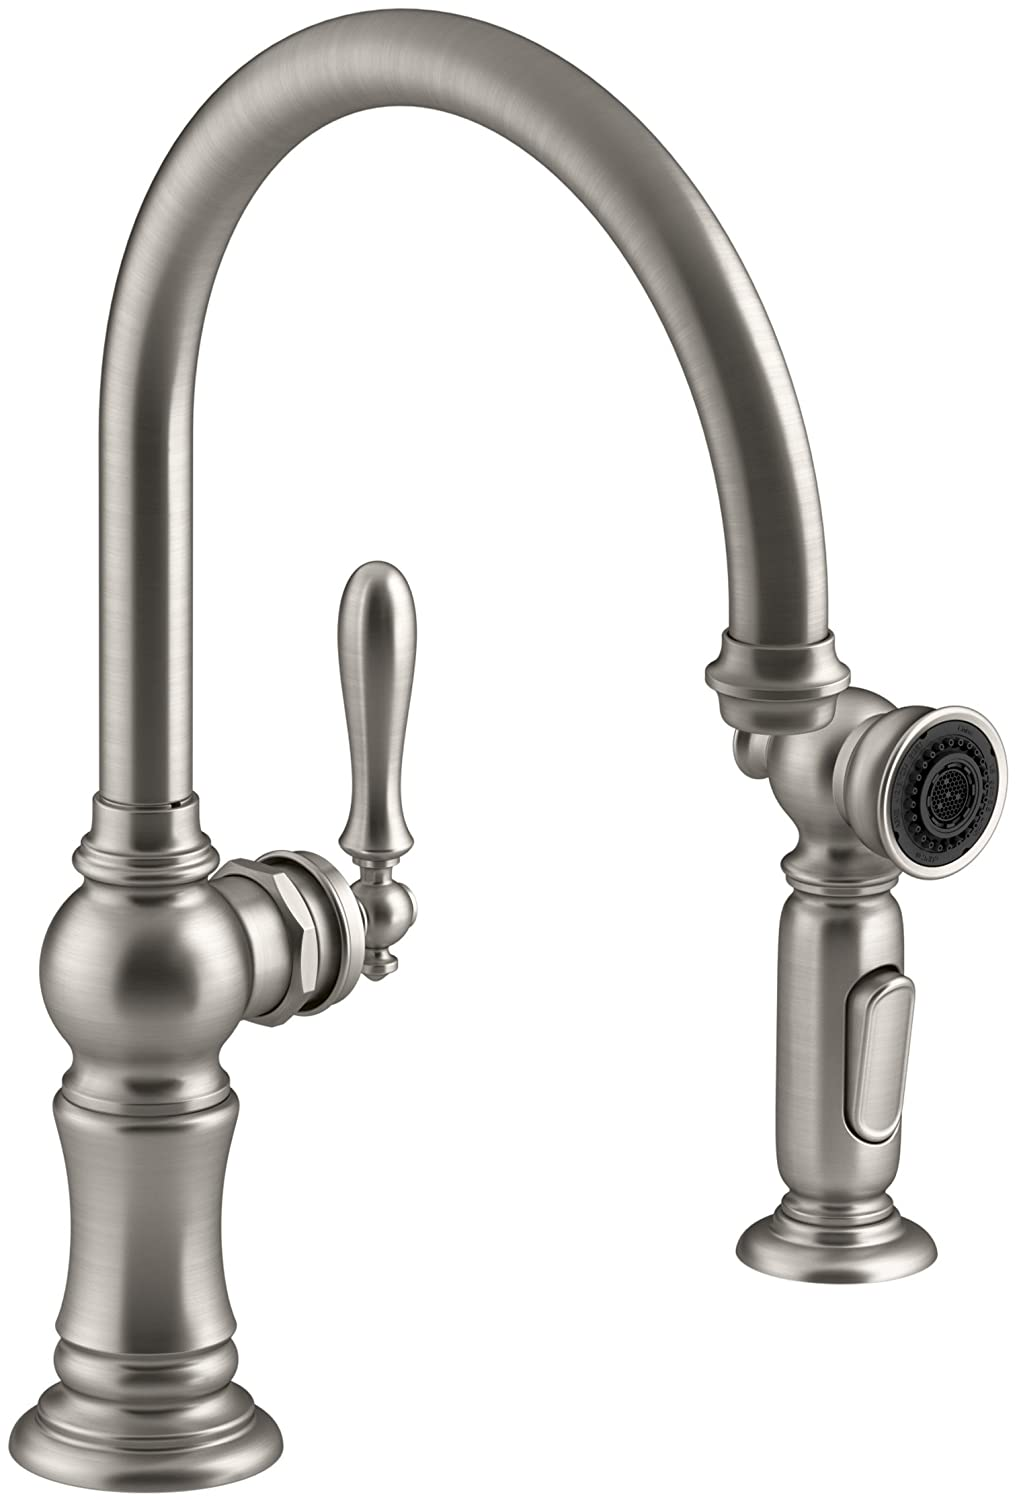 KOHLER K 99262 VS Artifacts 2 Hole Kitchen Sink Faucet And 14 11/16 Inch  Swing Spout, Vibrant Stainless     Amazon.com